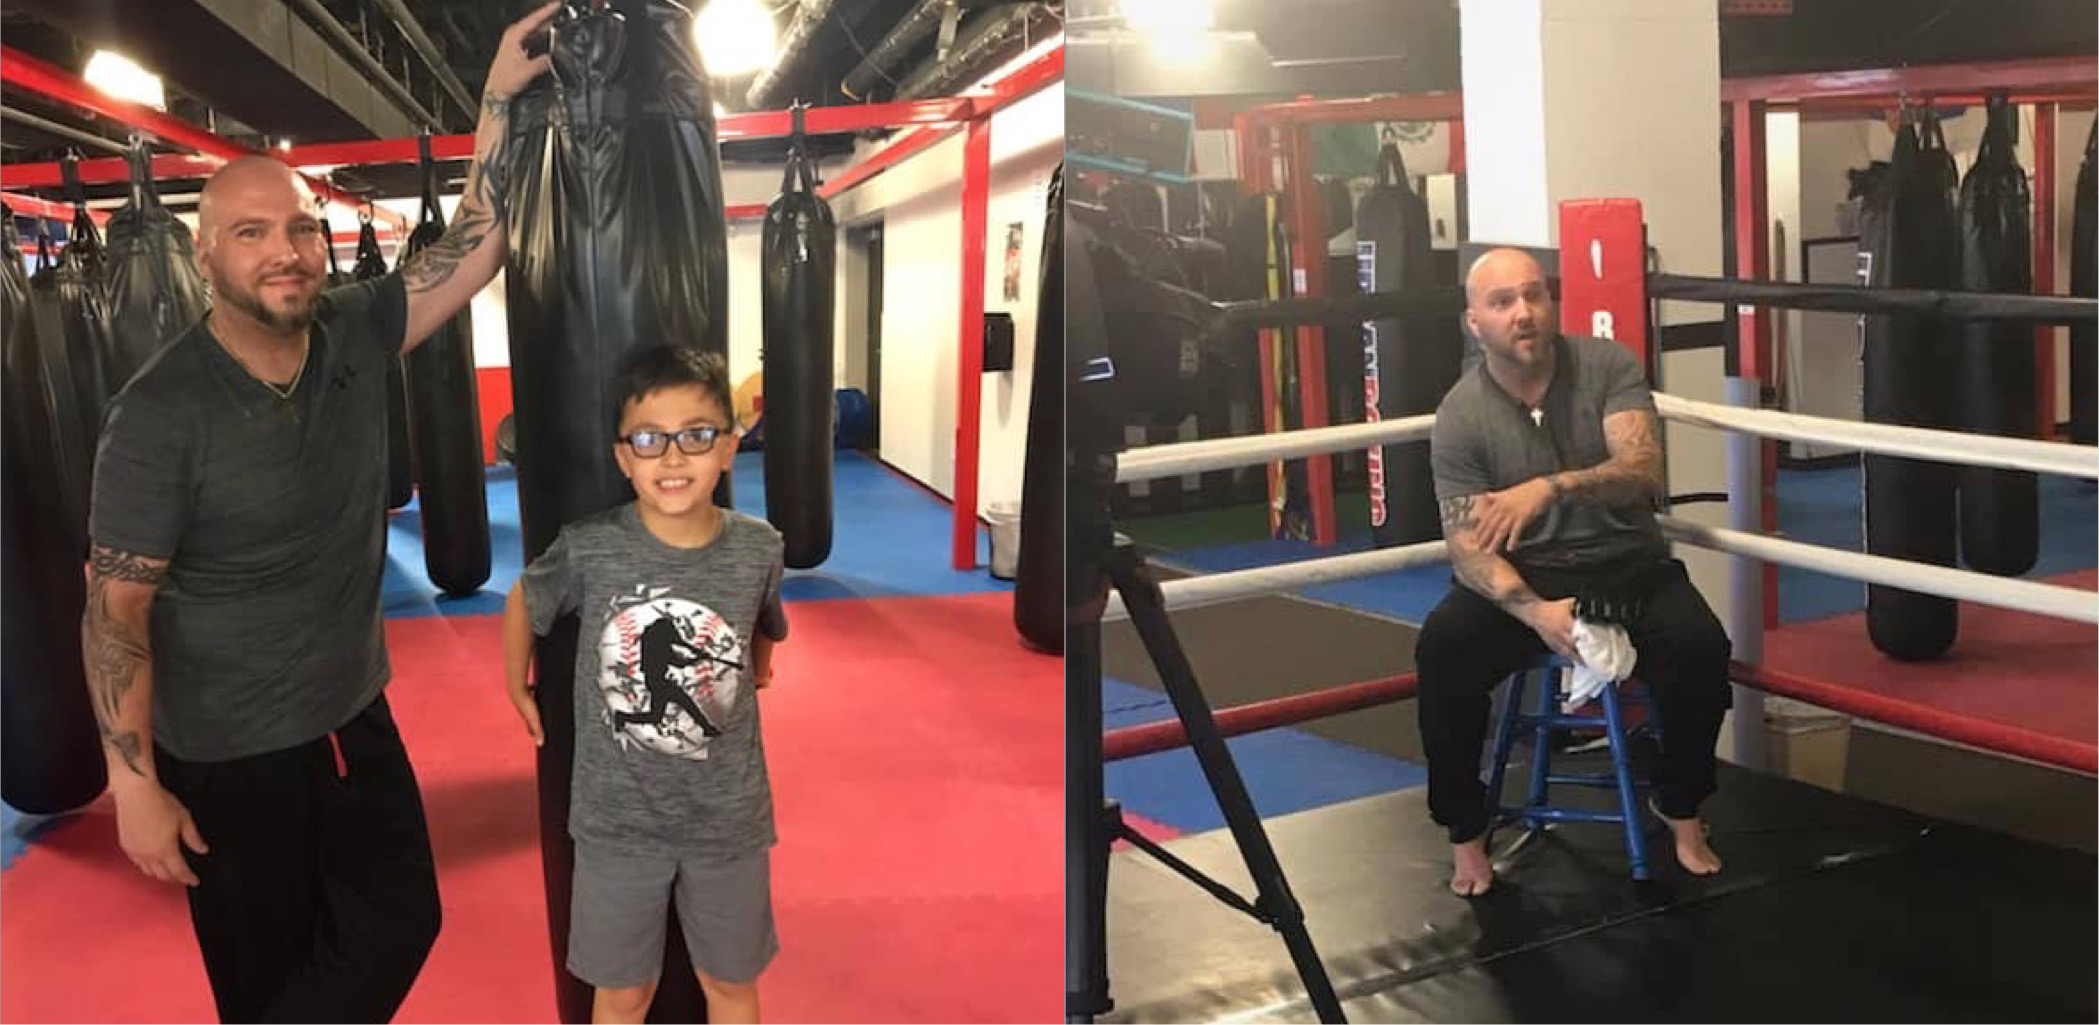 A Ringside Seat - Kickin' It with MMA Fighter and NxStage User Matt Kelly